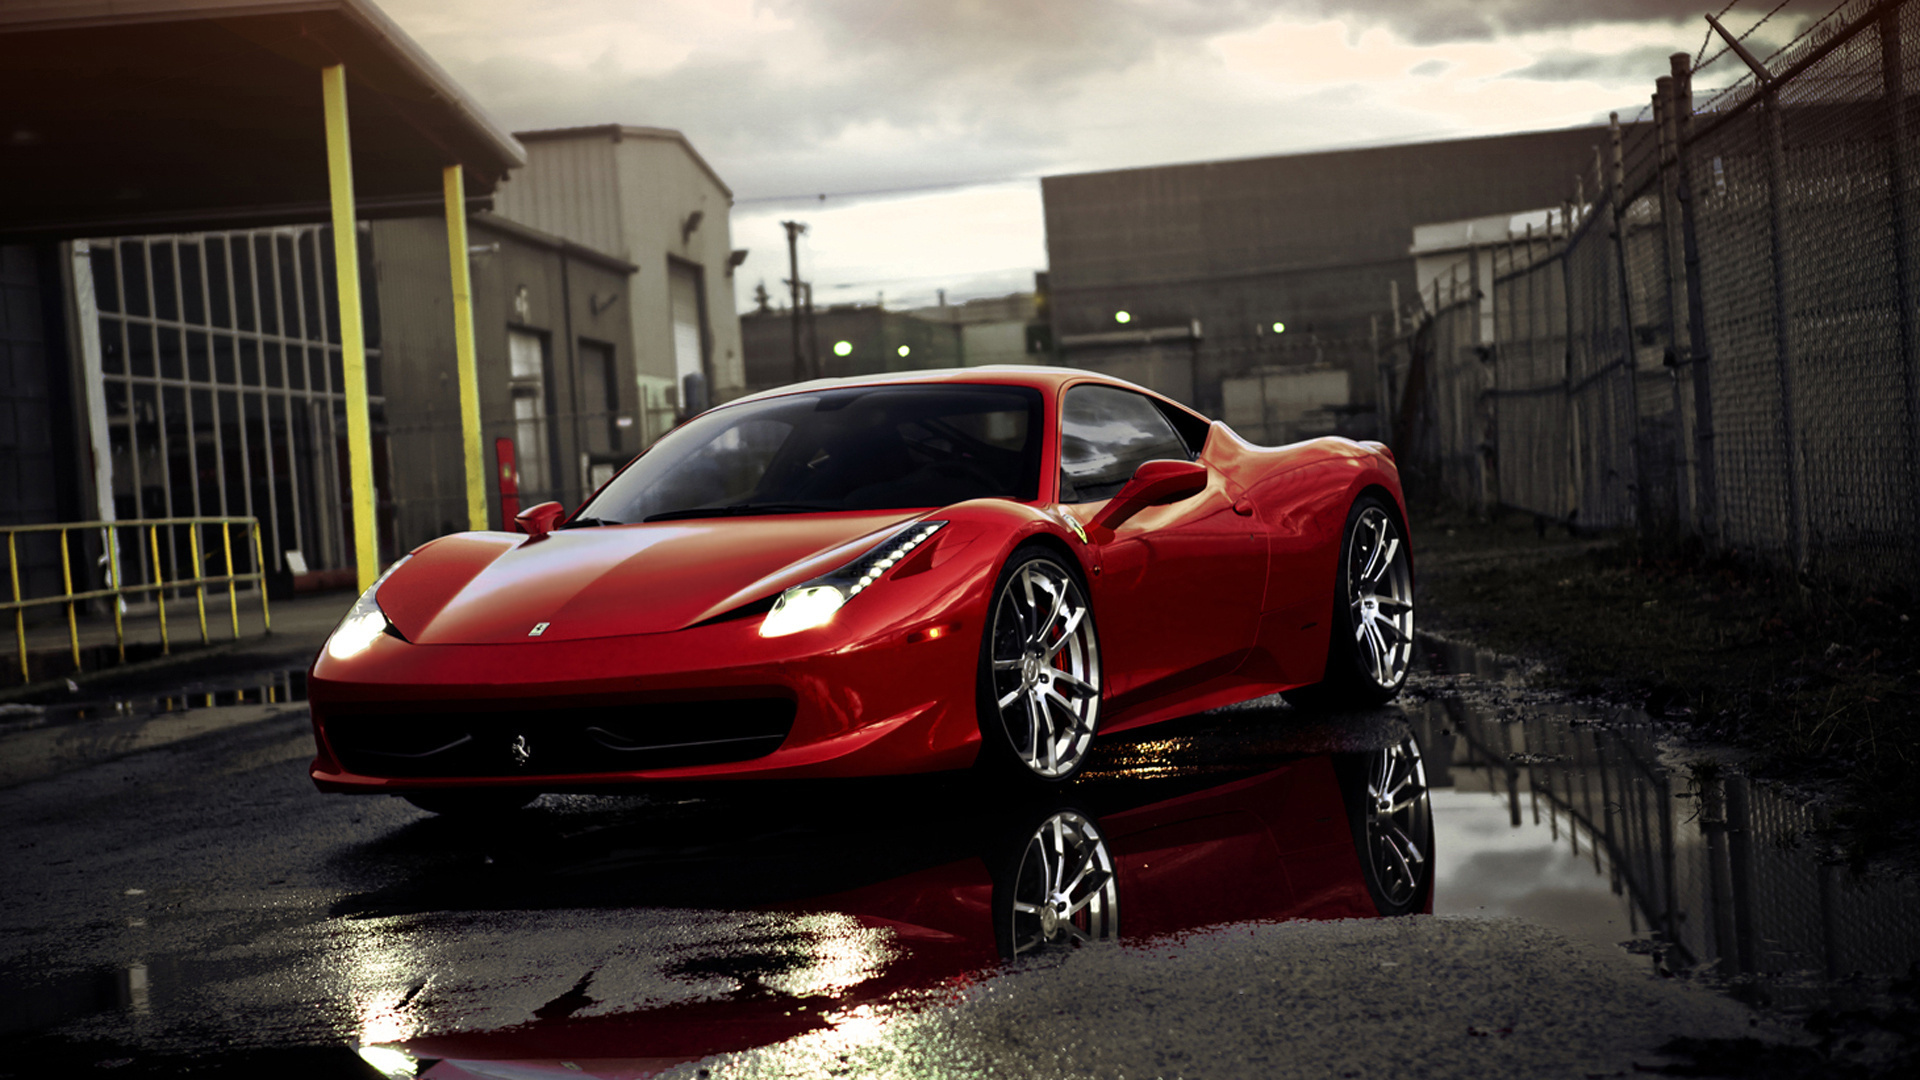 red ferrari wallpaper hd-#7